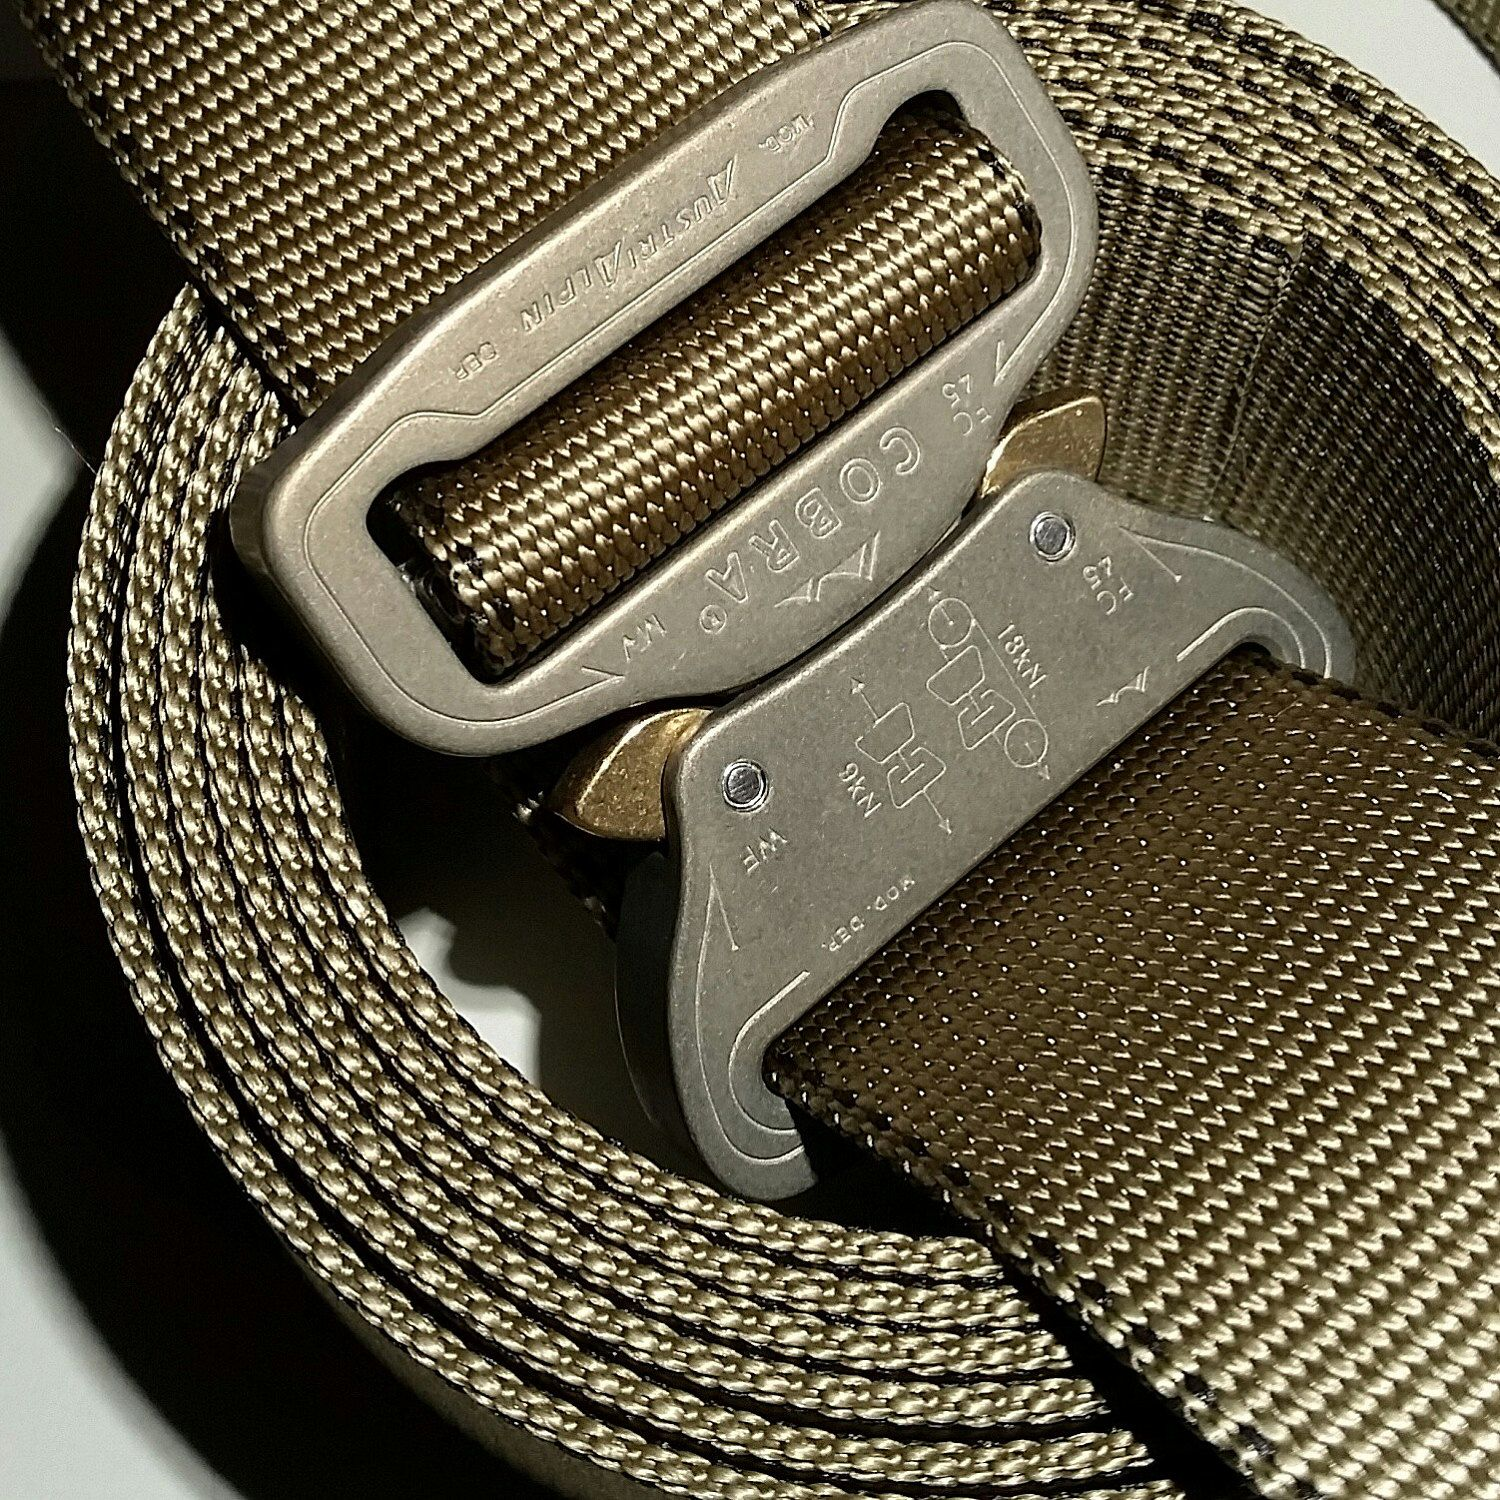 Duke men s strong buckle jeans cargo amp trouser rawhide leather belt - The Heavy Gunner The Perfect Gun Belt 1 75 Cobra Buckle Tactical Concealed Carry Belt For Every Day Carry